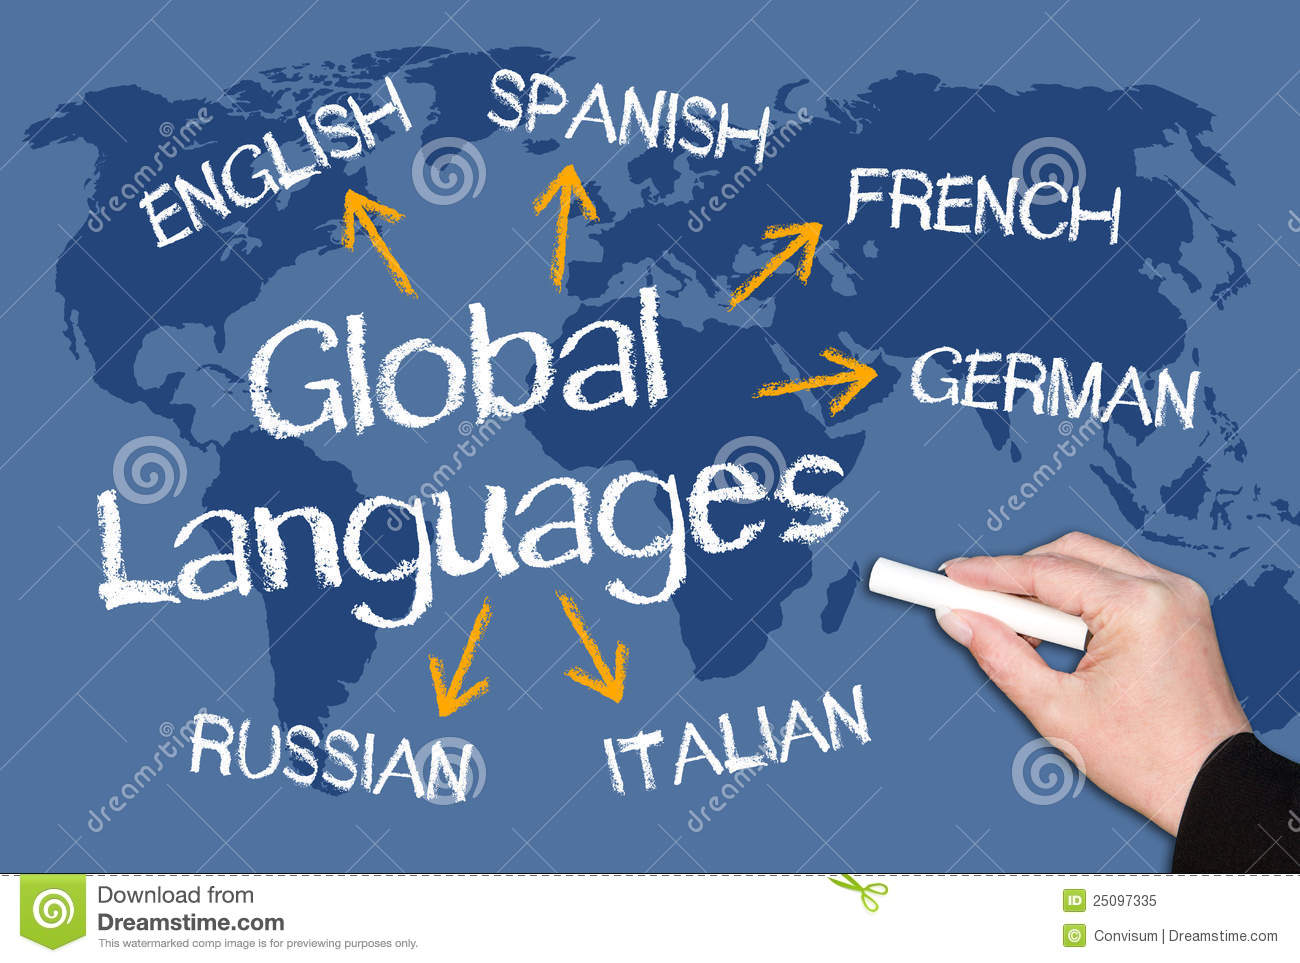 languages in globalizing world The 23rd international conference of the international association for intercultural communication studies (iaics) call for papers june 6-8, 2017 macao polytechnic.